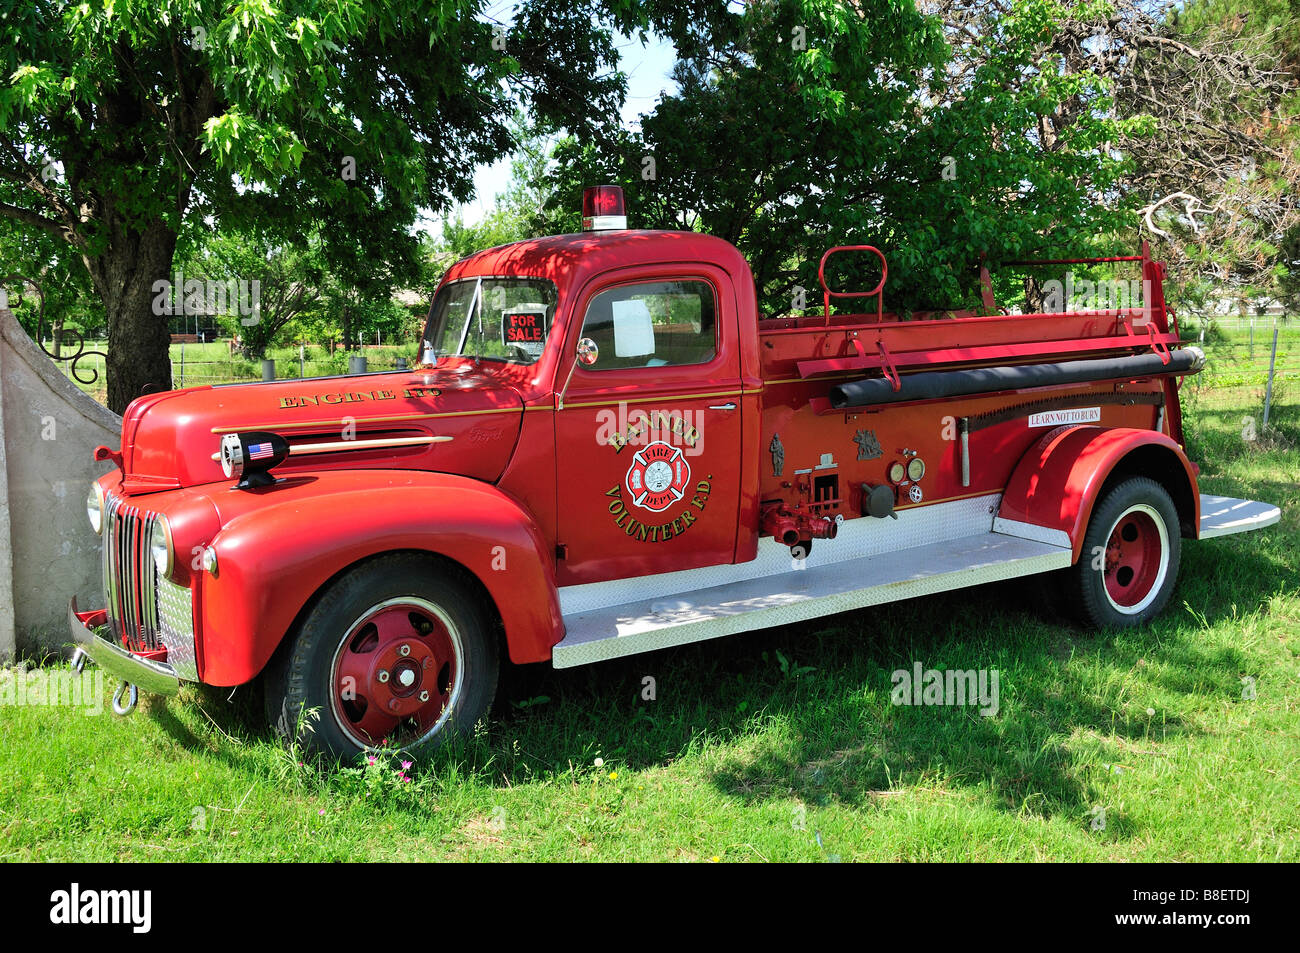 Old Fire Engine Sale Stock Photos & Old Fire Engine Sale Stock ...